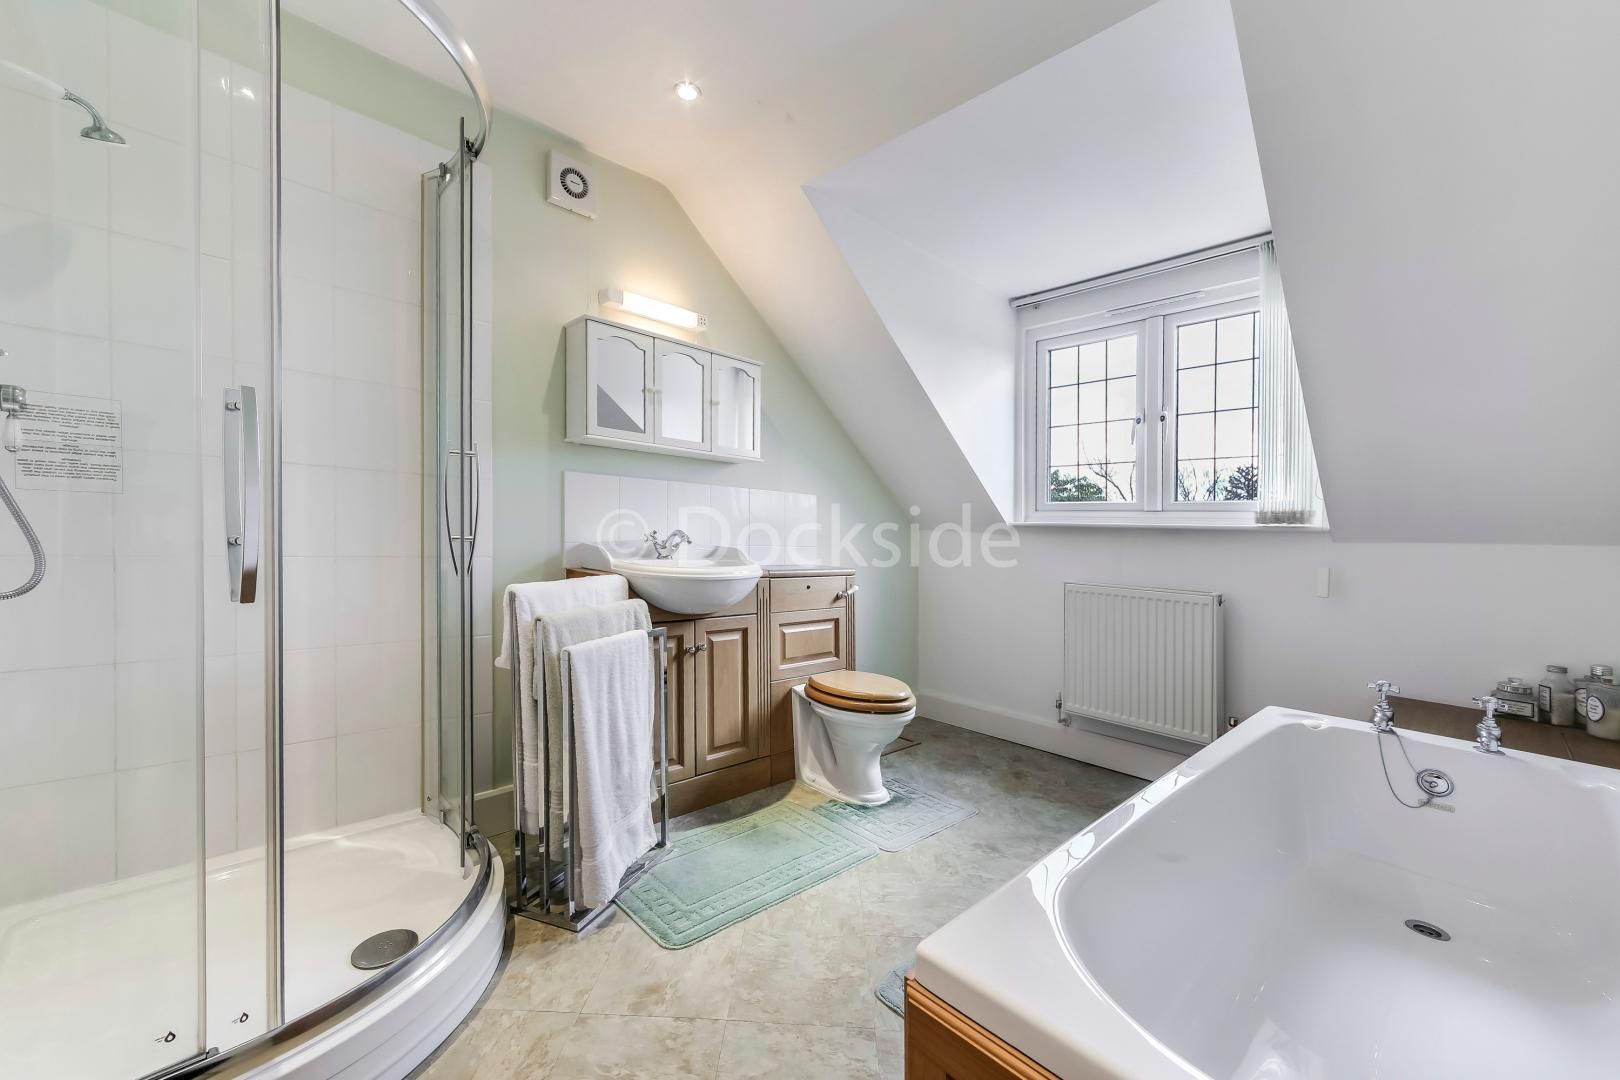 4 bed house for sale in Brompton Farm Road  - Property Image 7